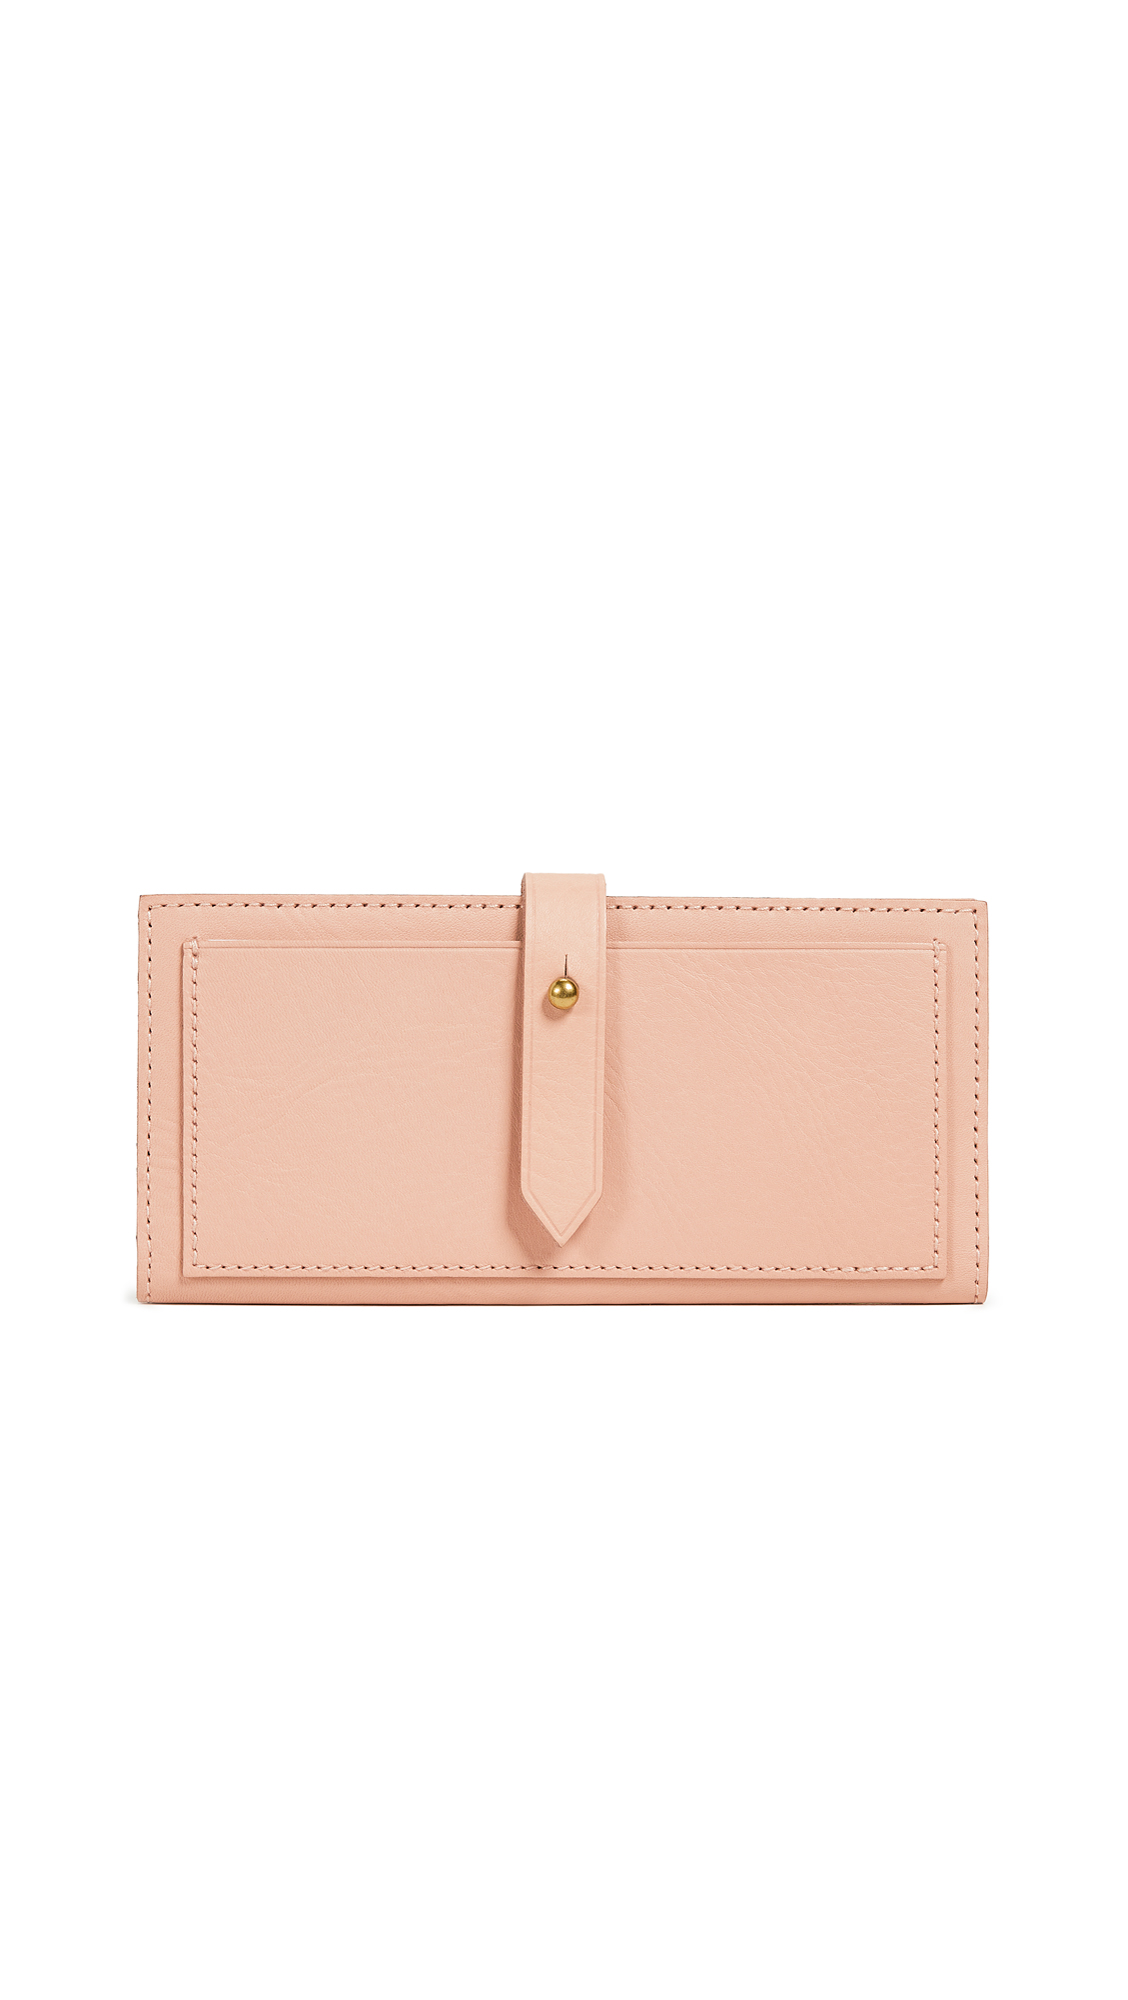 Madewell New Post Wallet In Sheer Pink